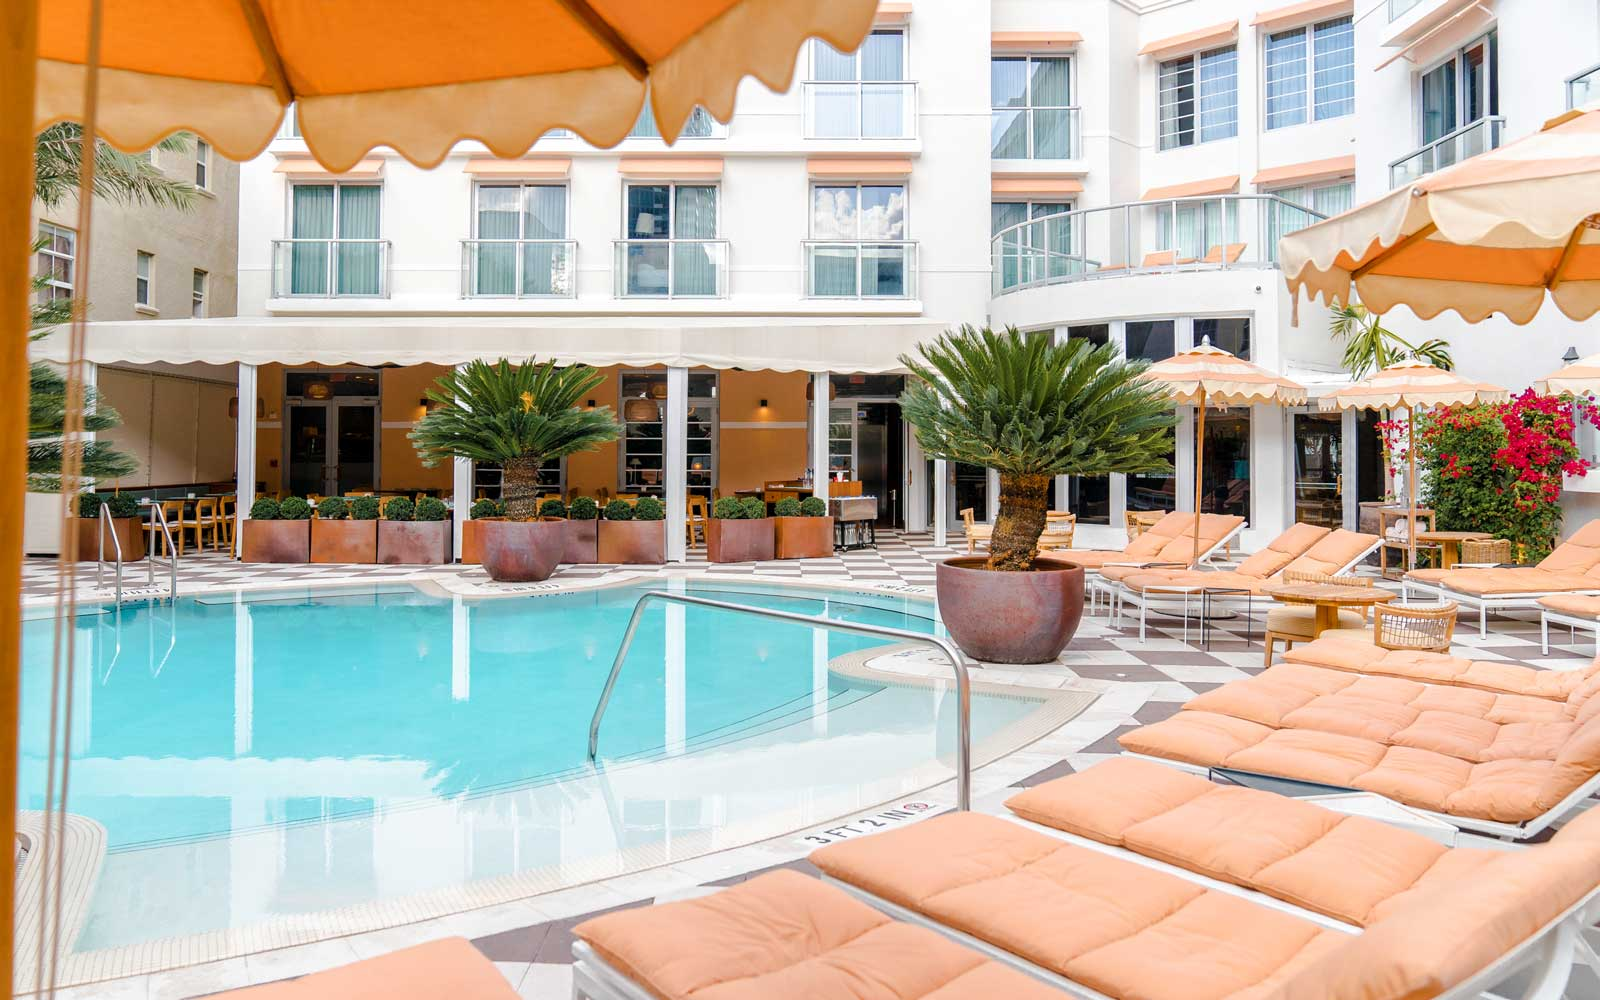 Save at Least 30% on Stays at the Plymouth in Miami Beach